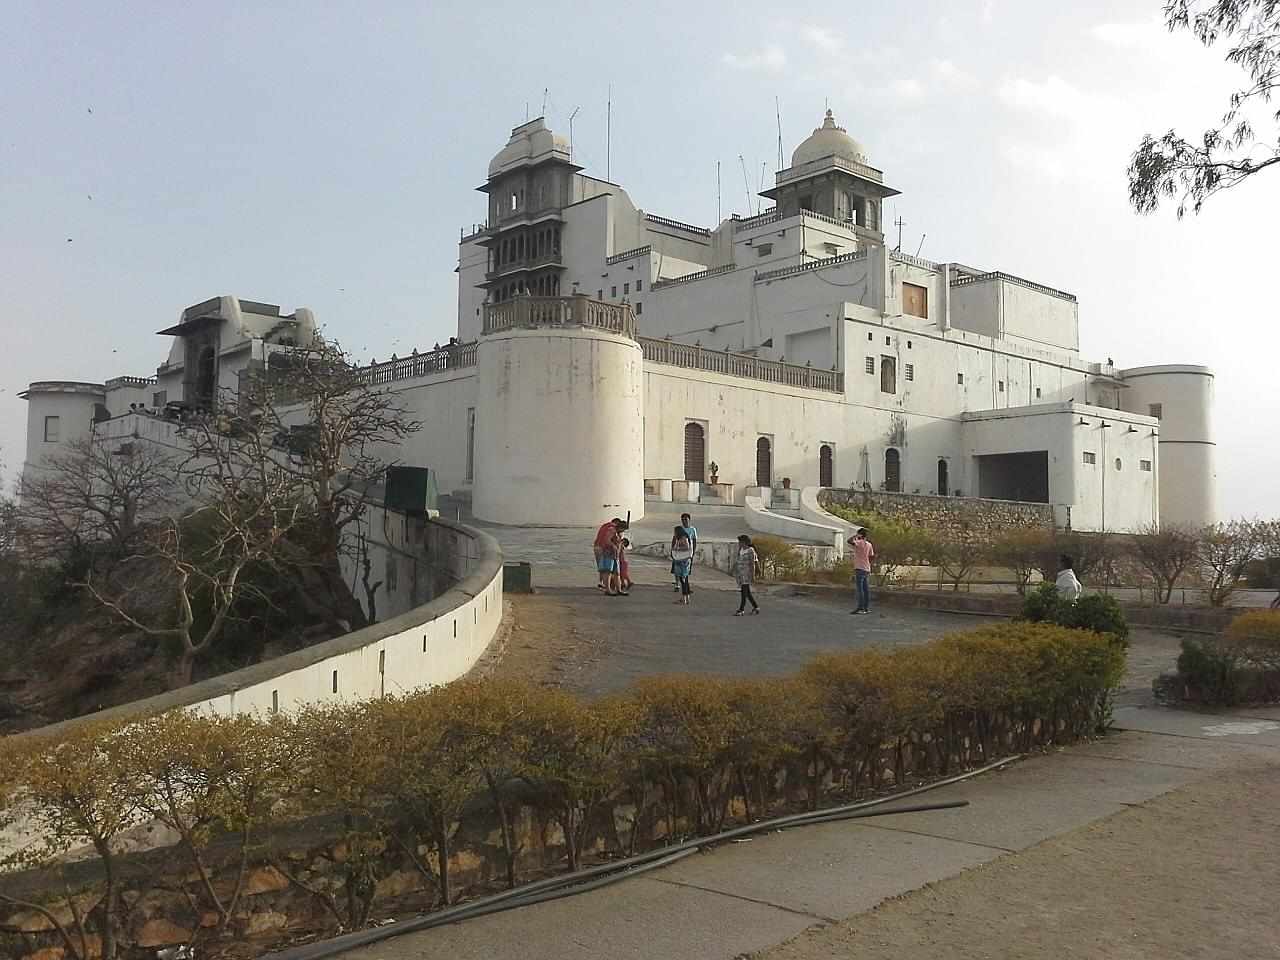 Royal-Tour-Package-of-Chittorgarh-and-Udaipur-JustWravel-1597390678-2.jpg